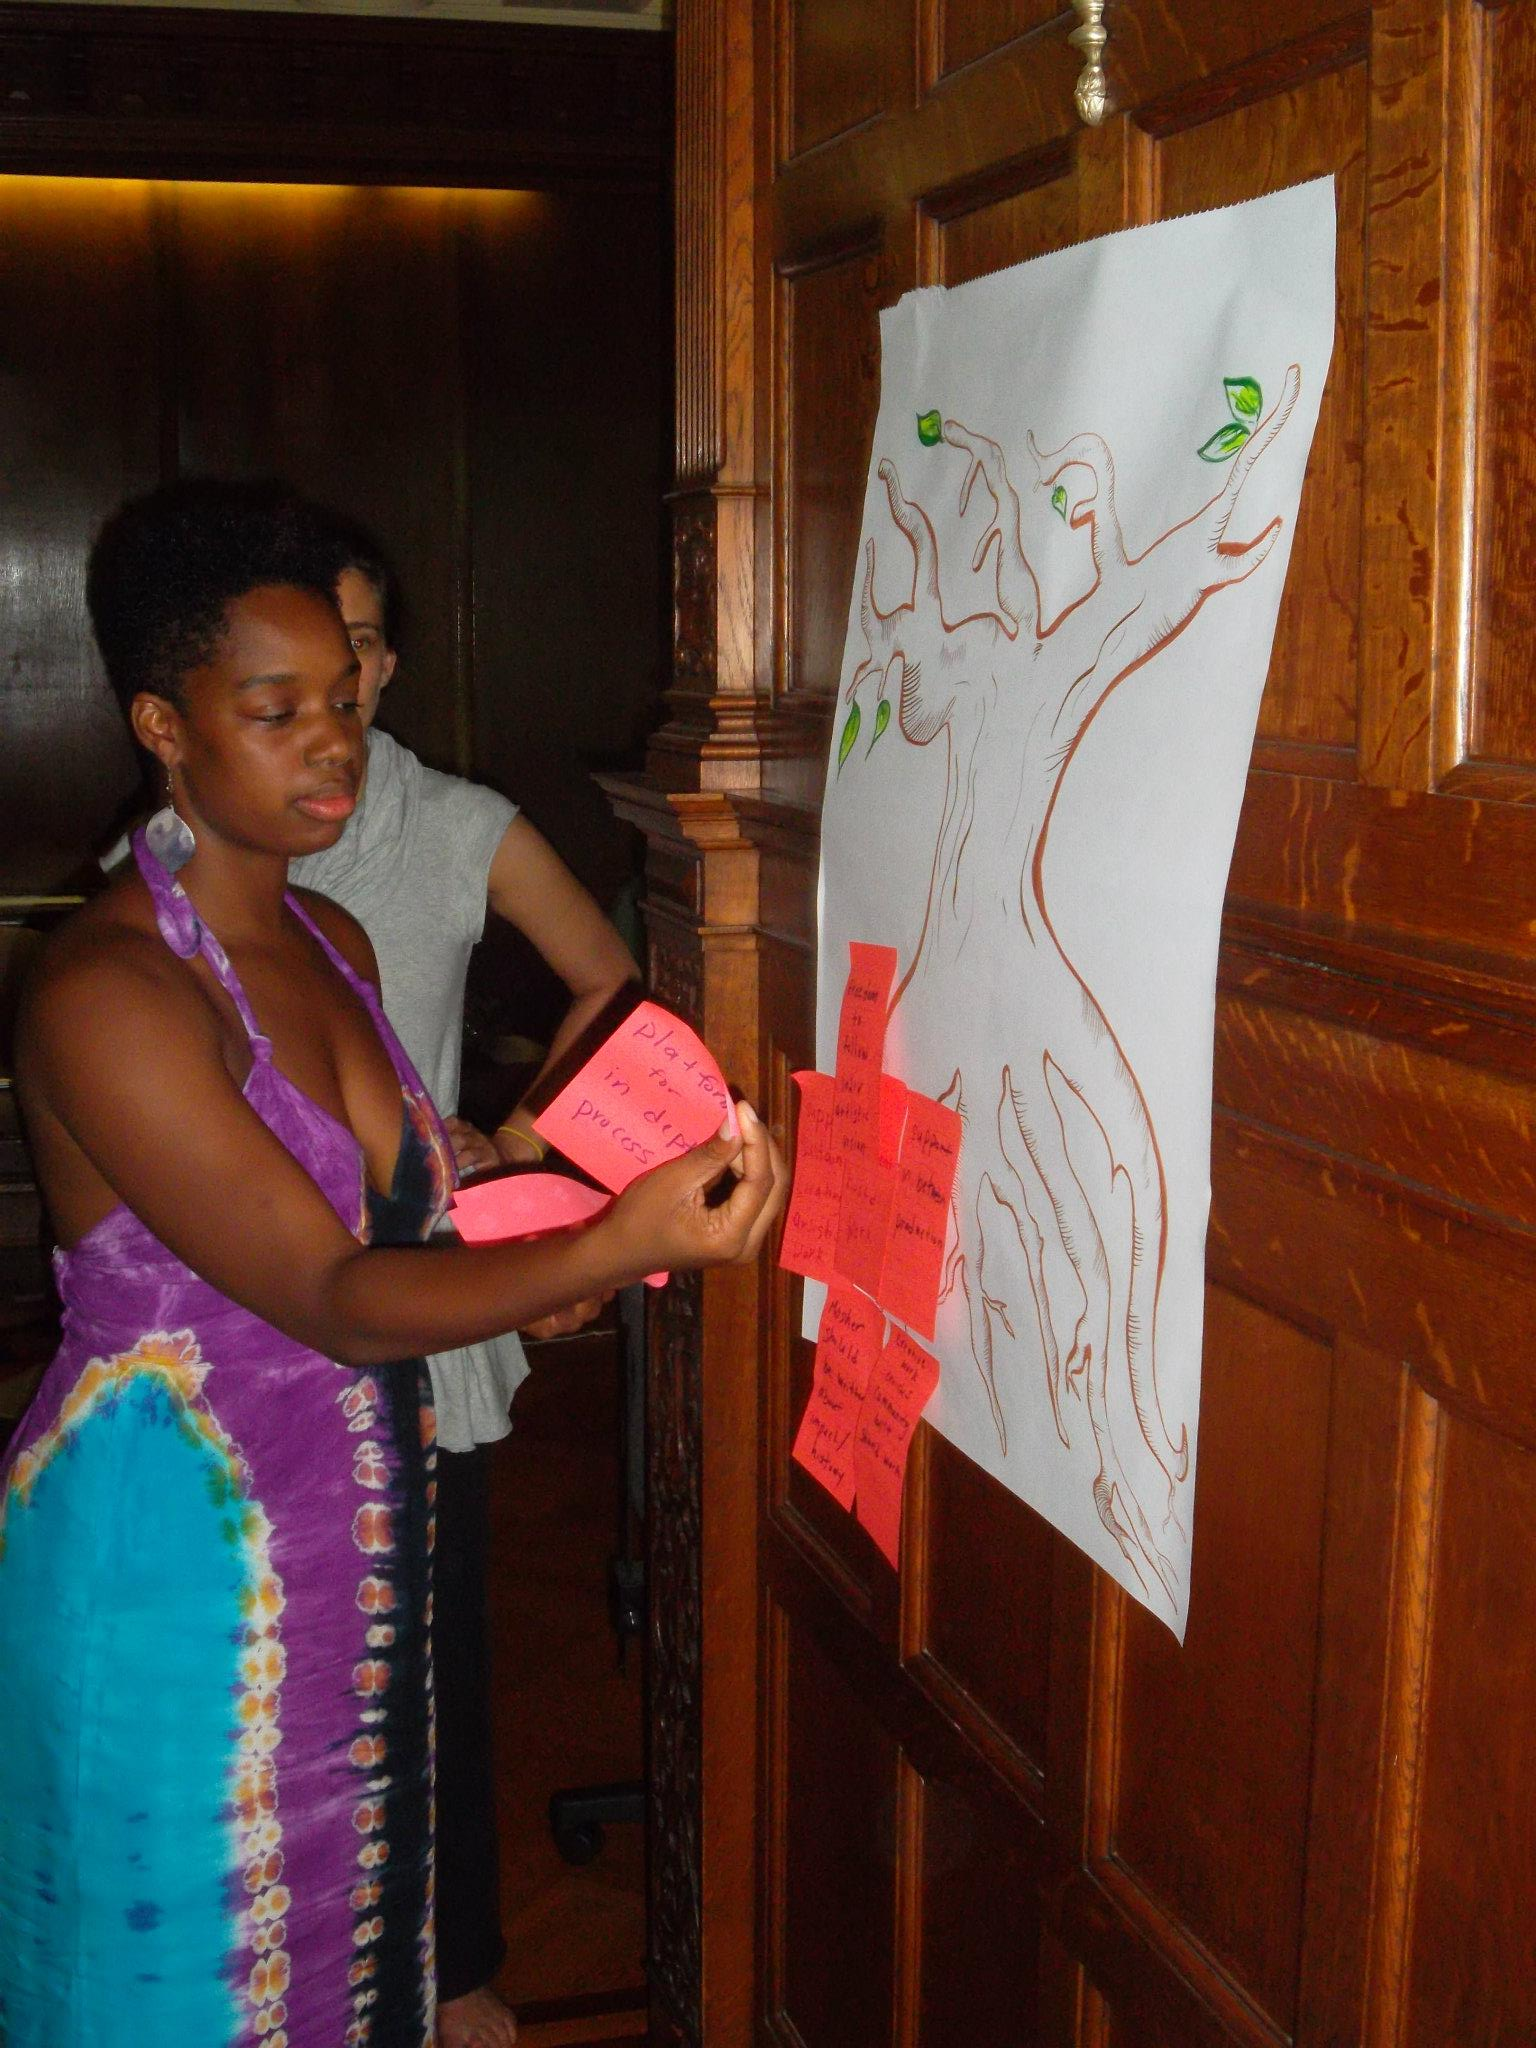 Lela Aisha Jones at the Mascher planning retreat in 2012. Photo courtesy of Mascher Space.